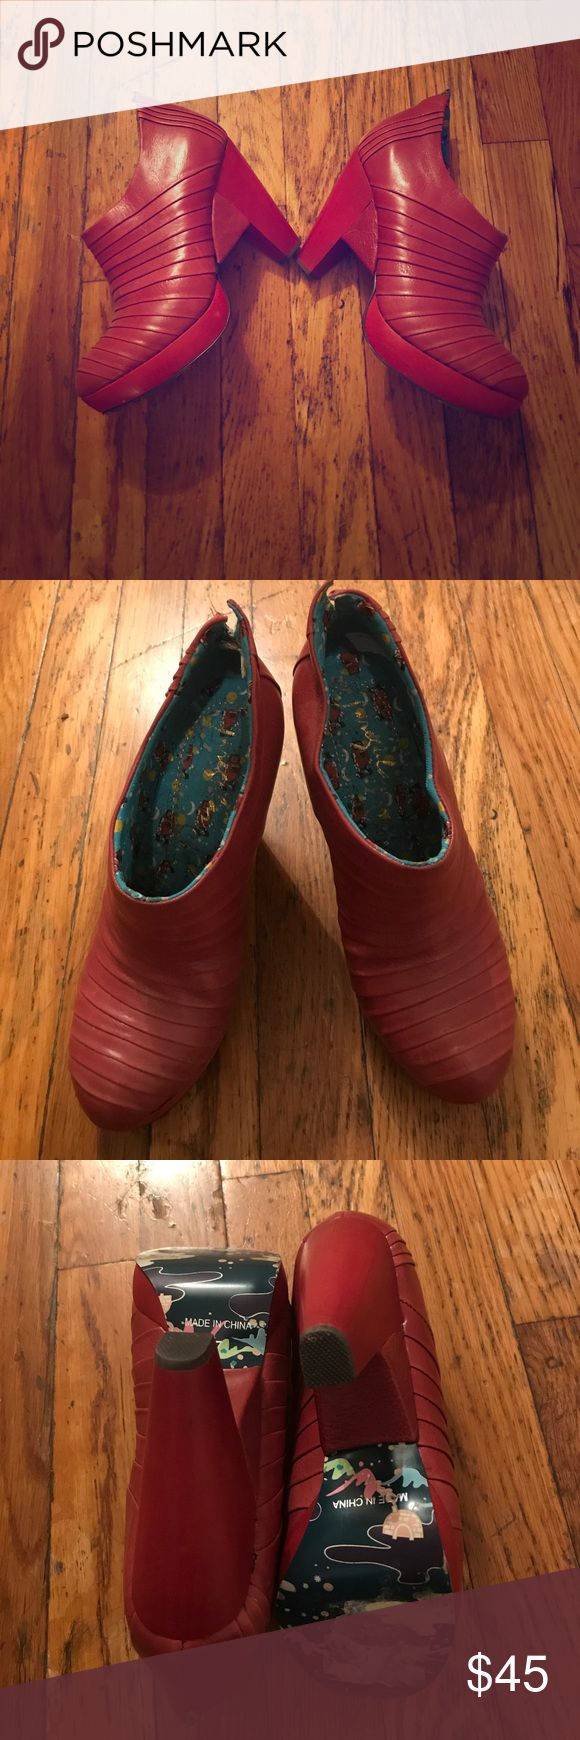 Irregular Choice Booties These red slip-on booties have all the funky details that are the Irregular Choice signature. Barely worn. Some scuffs/discolorations on the leather and the wood. Bottom sole on one still has some sticky residue/paper on it from where the sale sticker was. Very unique! They are slip-on. Make an offer! Irregular Choice Shoes Ankle Boots & Booties